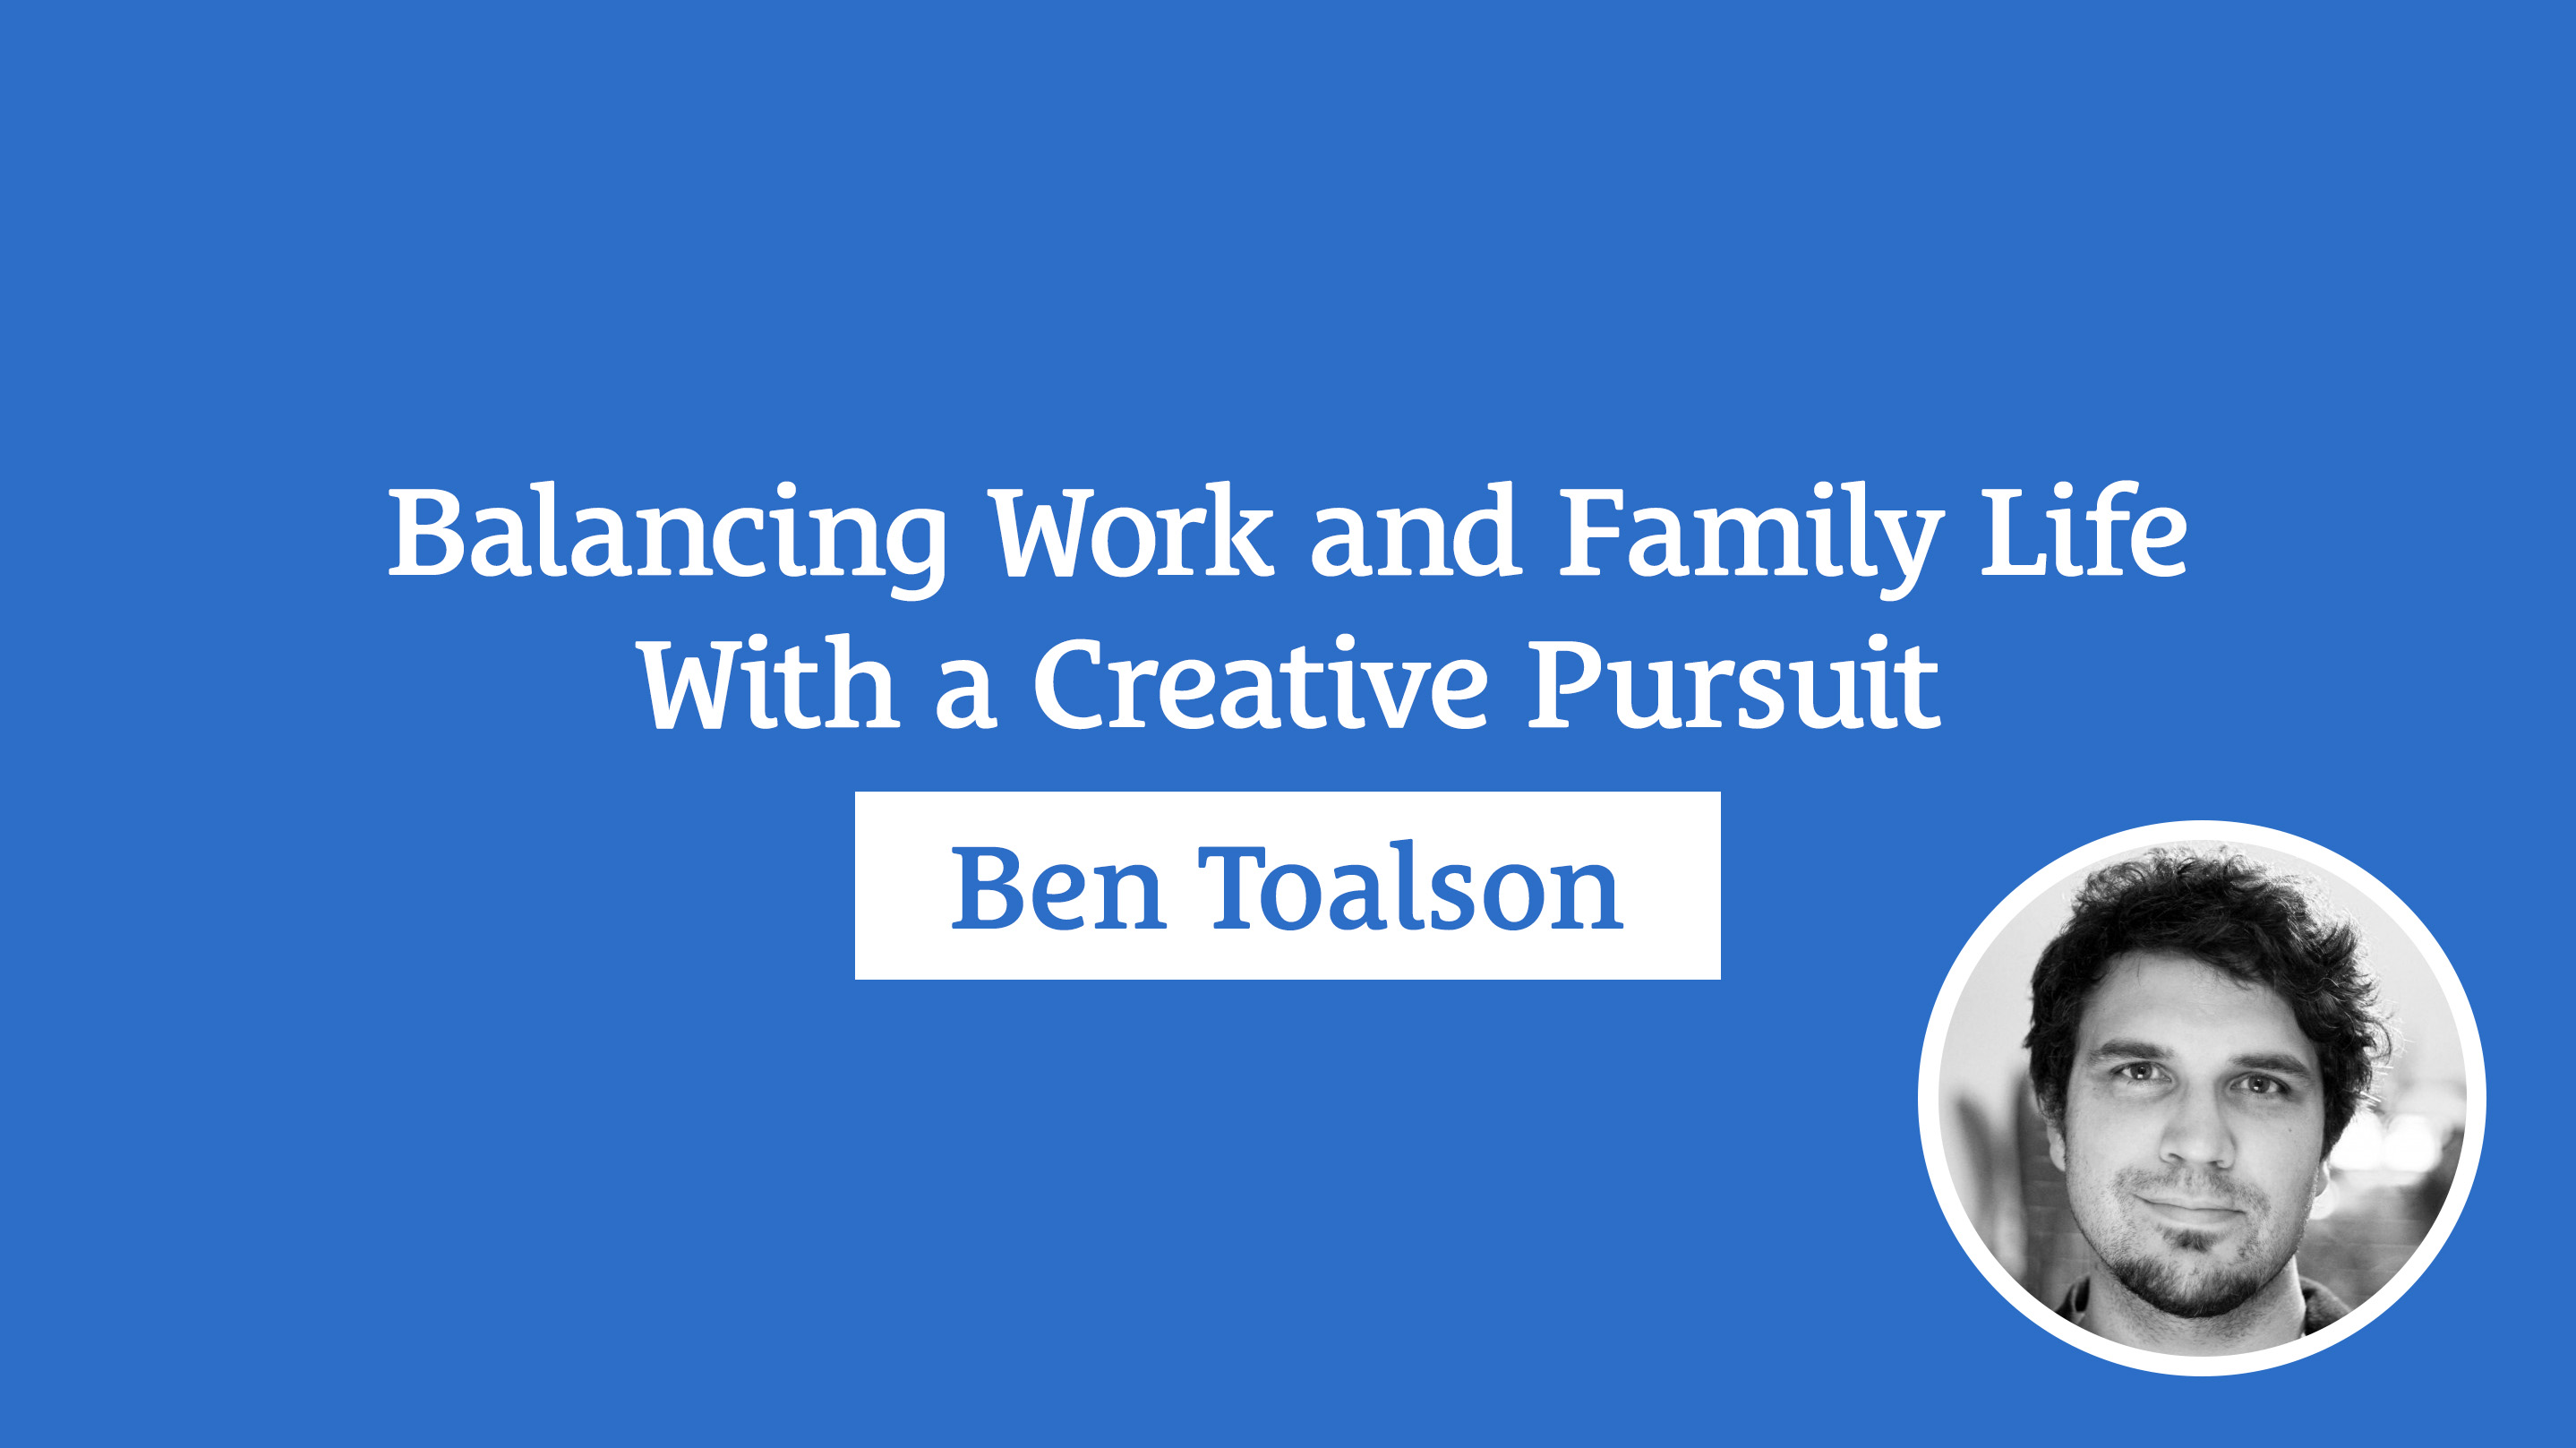 Balancing Work and Family Life With a Creative Pursuit